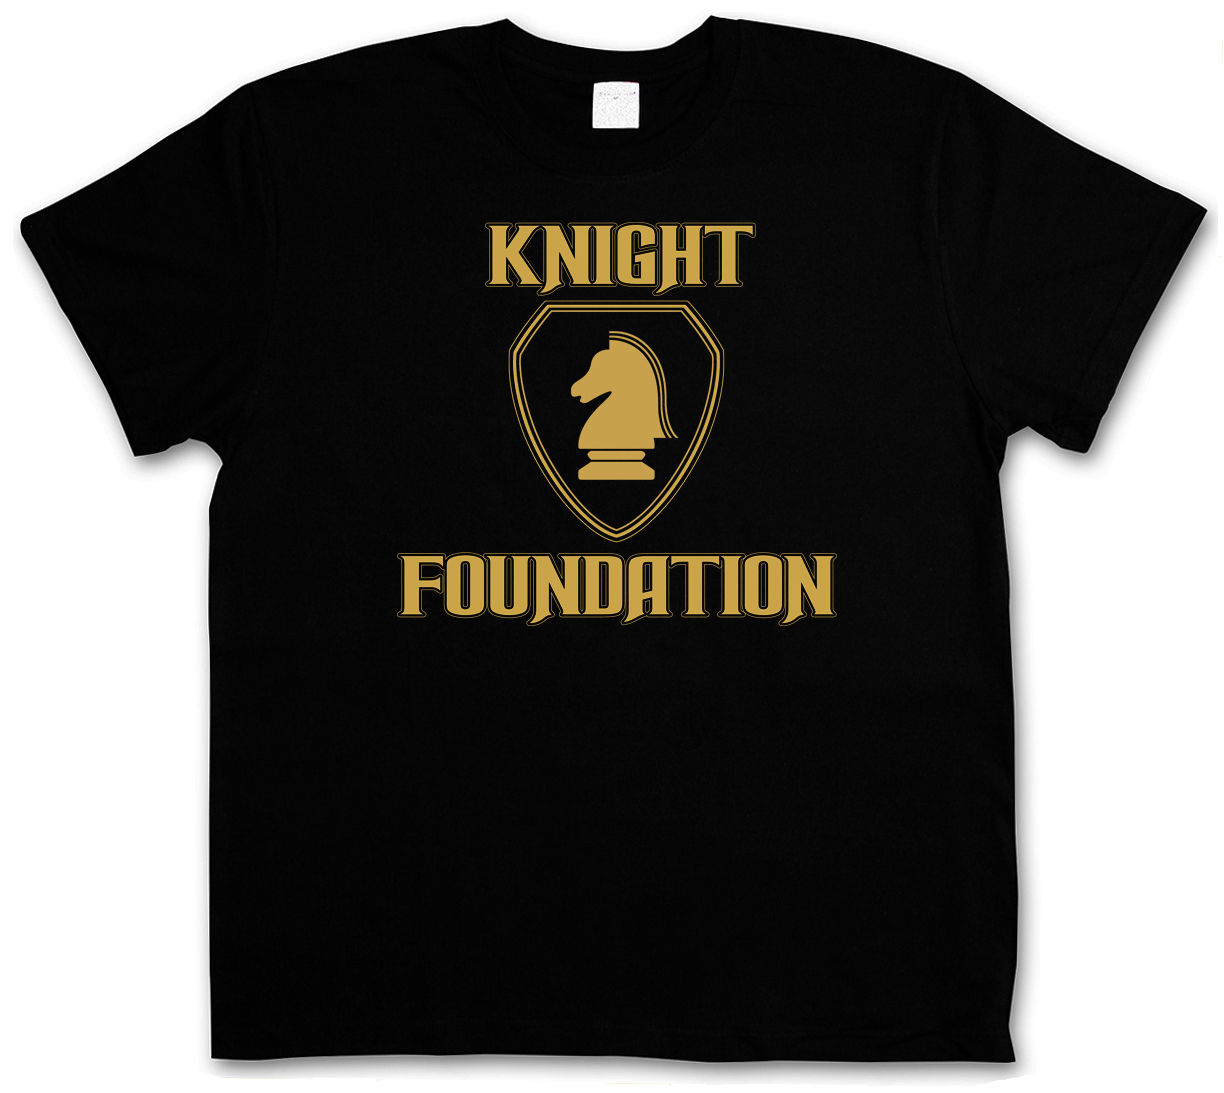 T-SHIRT BLACK KNIGHT FOUNDATION LOGO - Rider K.I.T.T. S M L XL XXL XXXL T-Shirt